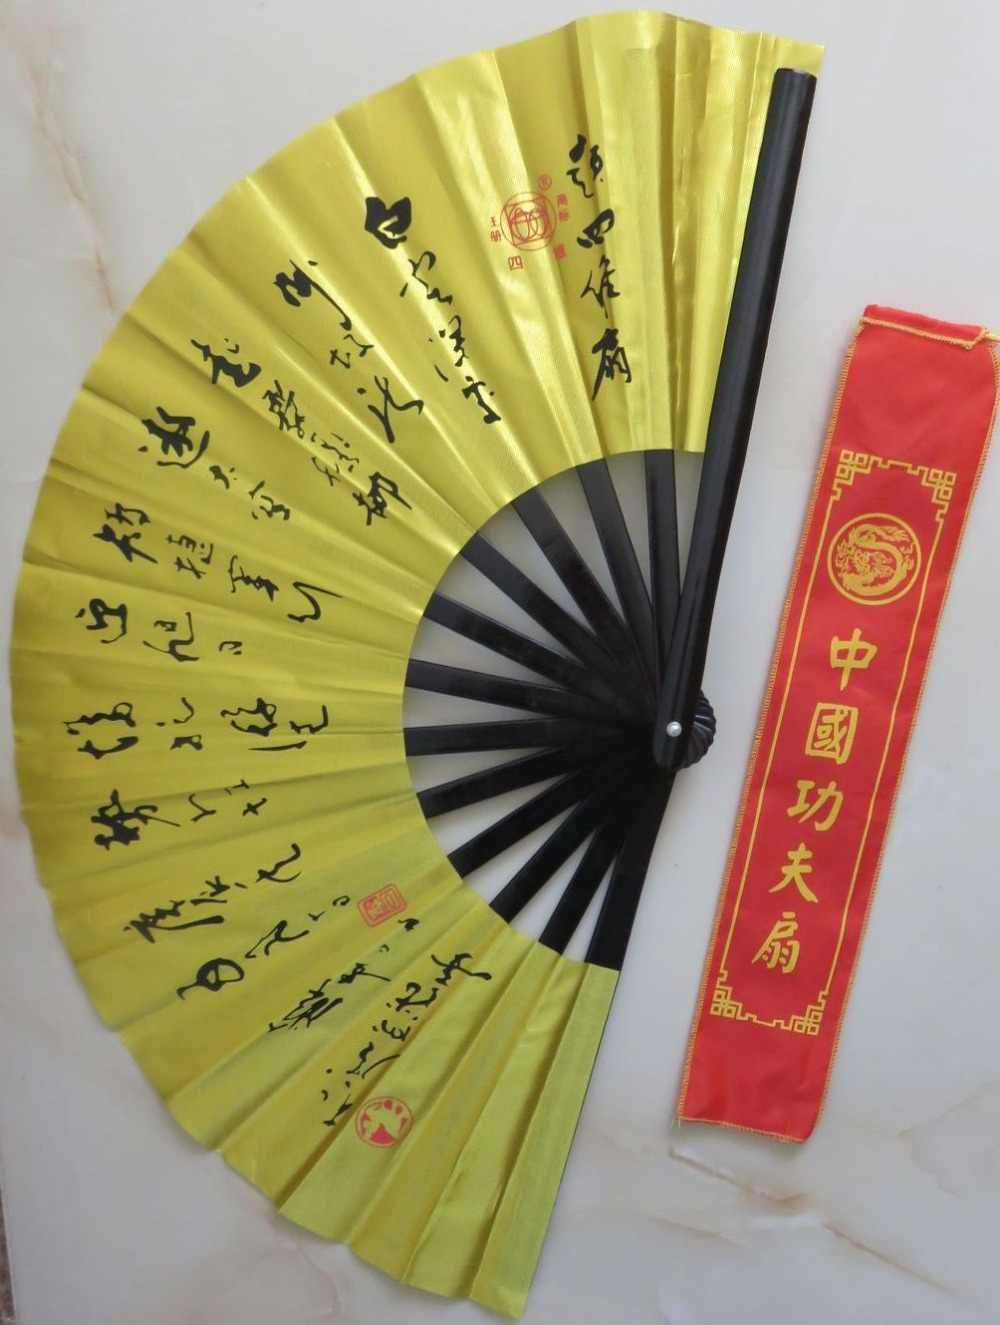 Kung fu taiji fans dicken bambus knochen vierdimensionalen goldene tai chi fan martial arts fan